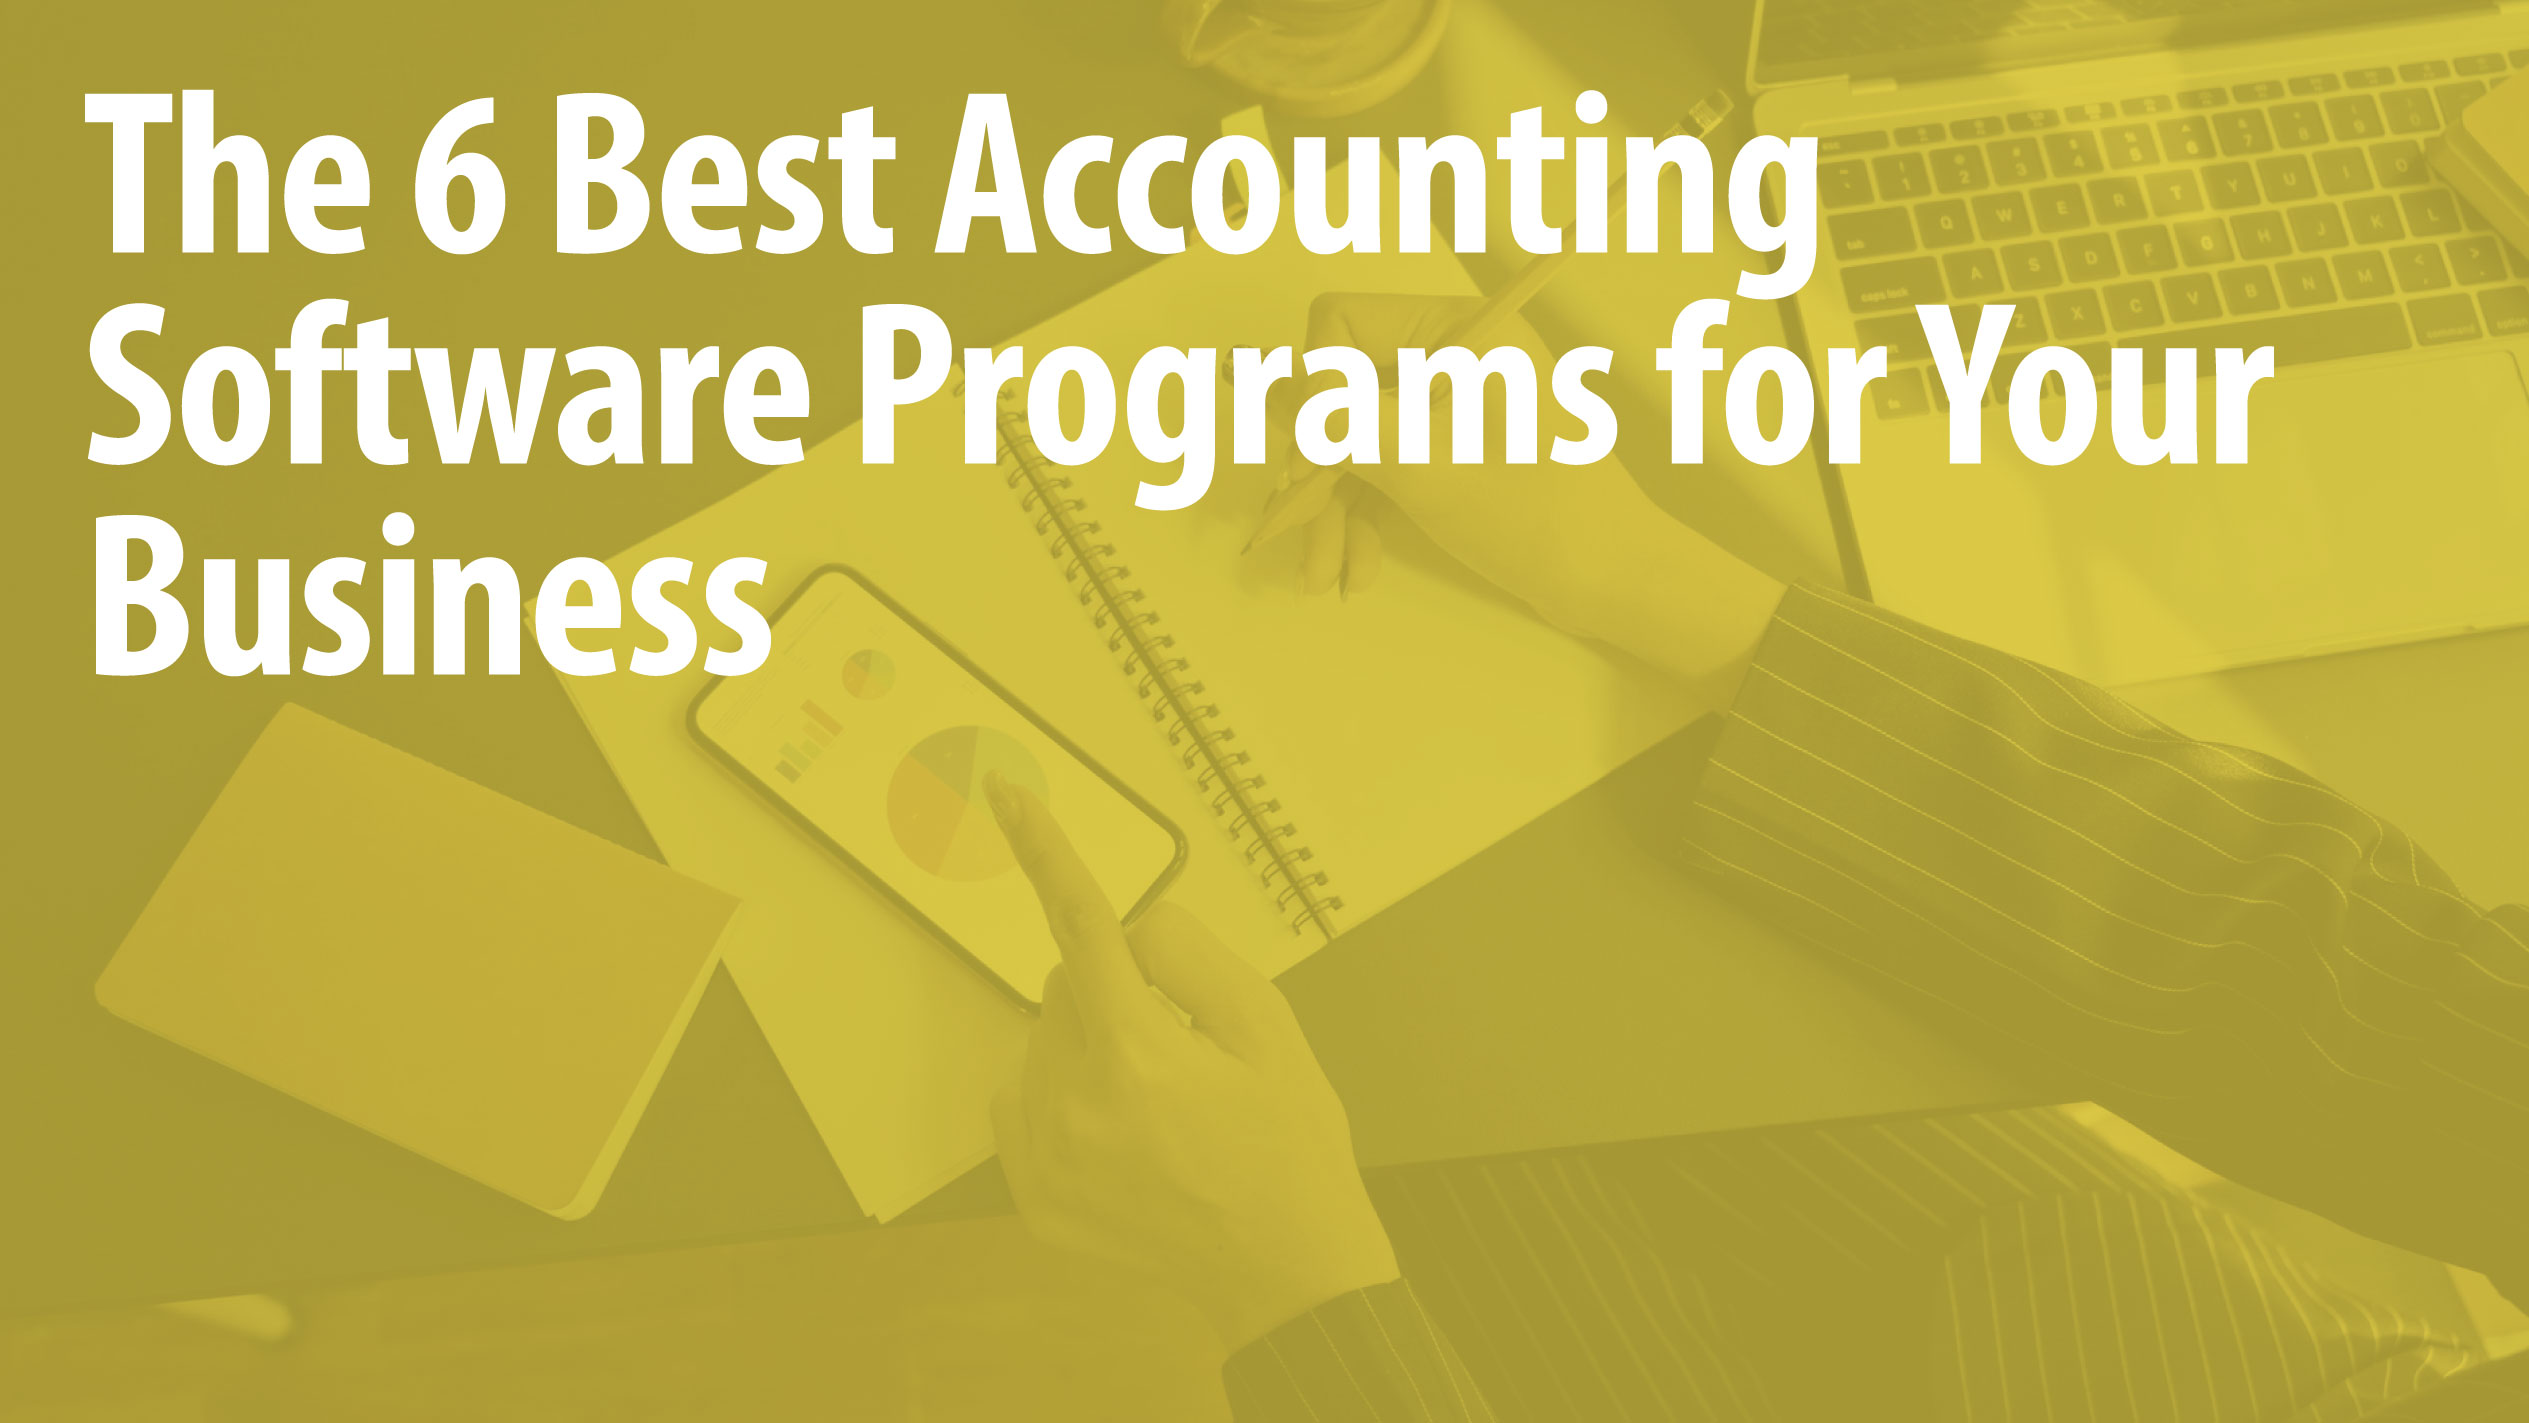 The 6 Best Accounting Software Programs for Your Business